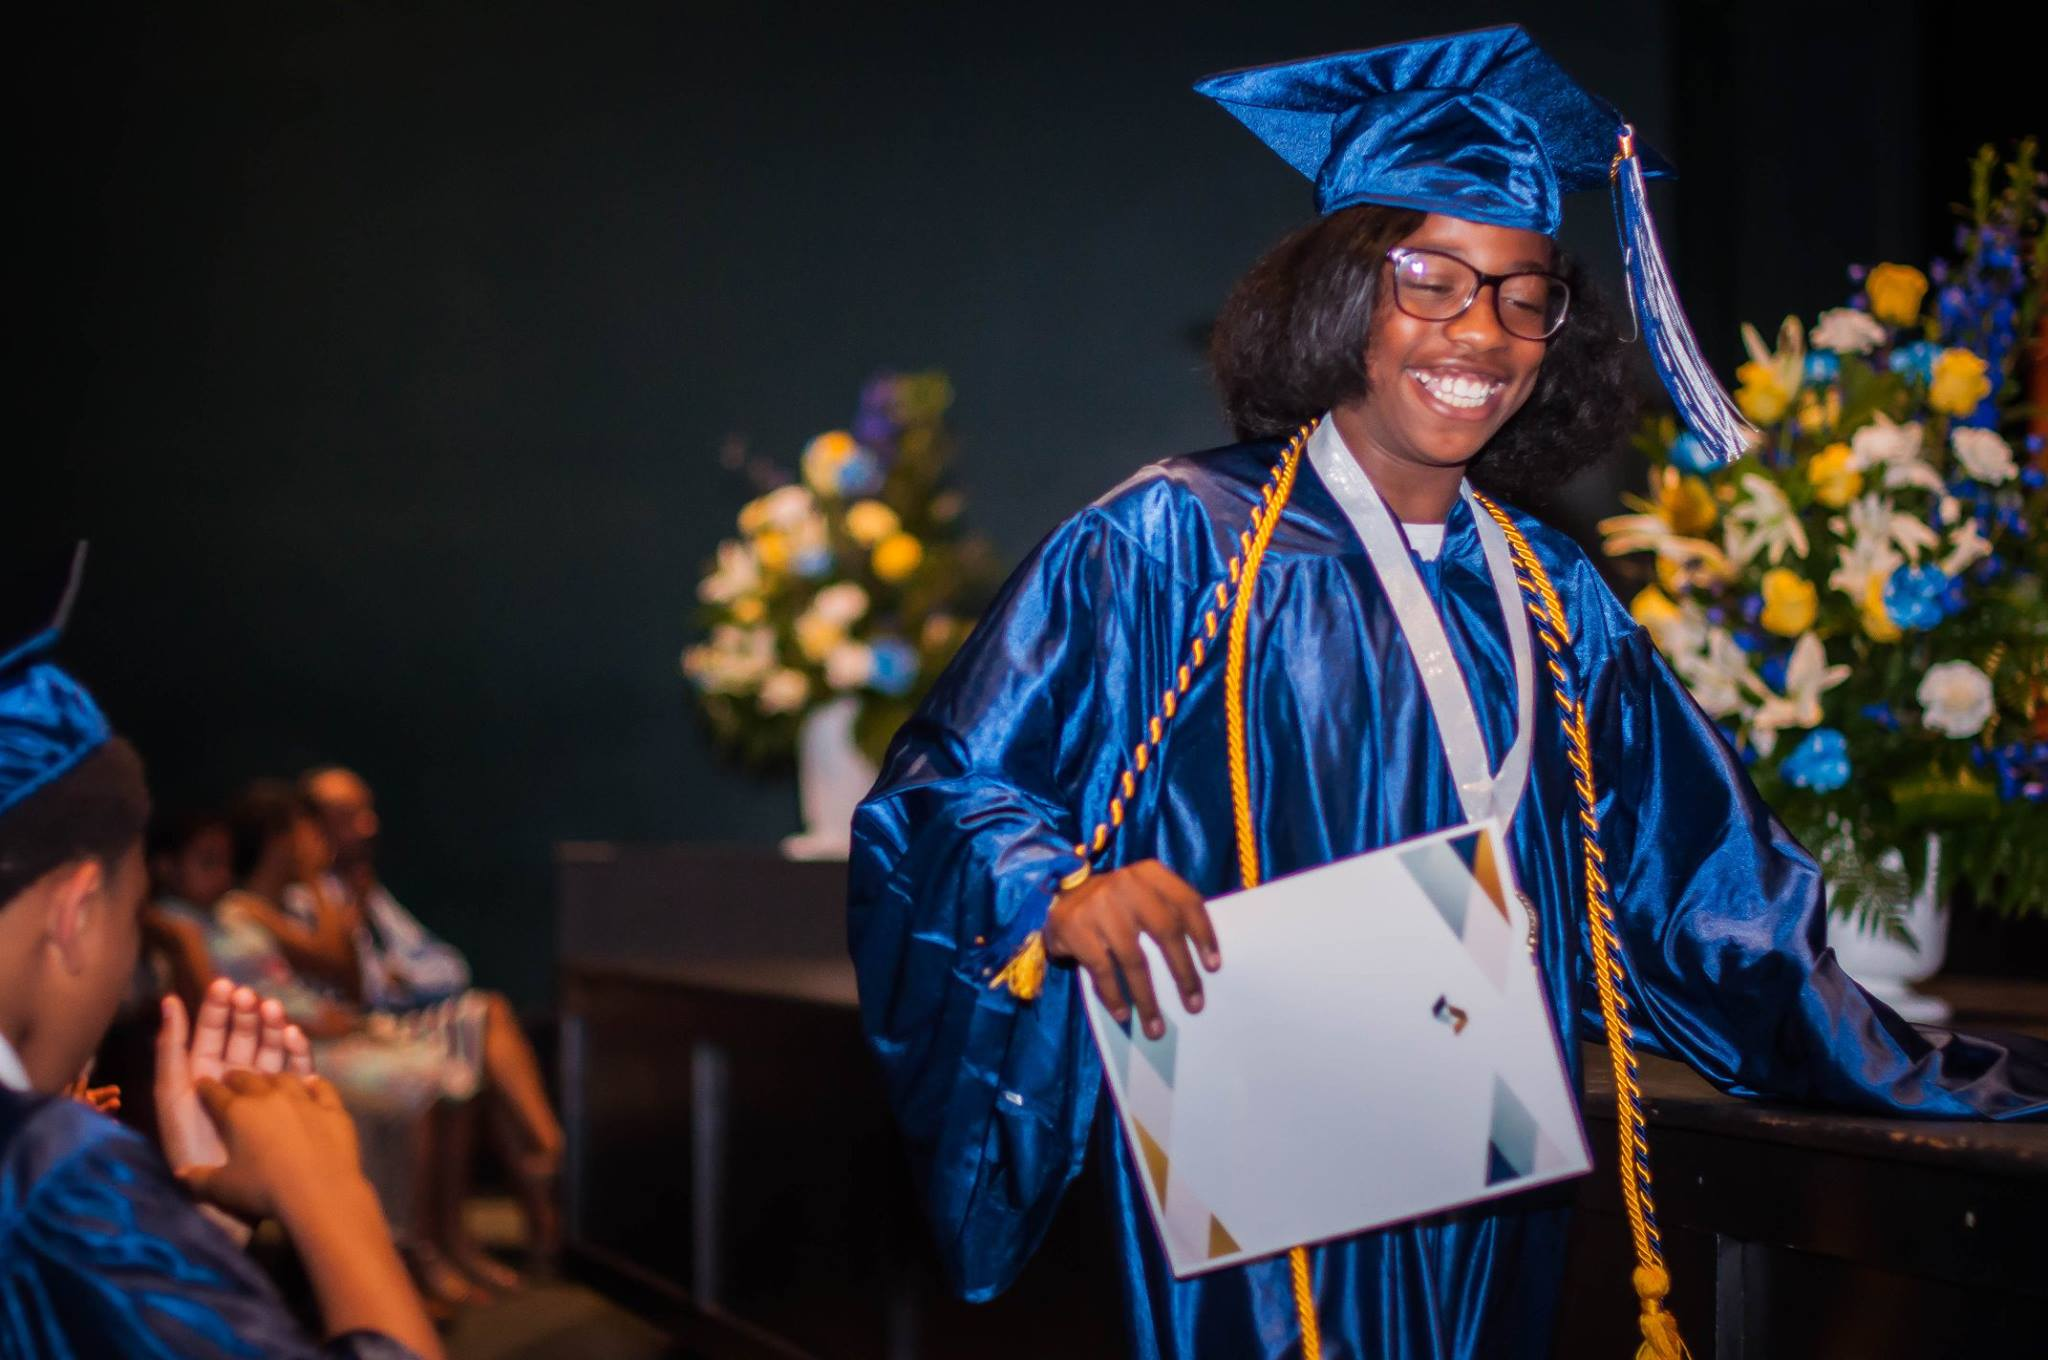 Yolanda's daughter, Rogenique Webster, graduates last spring from Purpose Preparatory Academy.